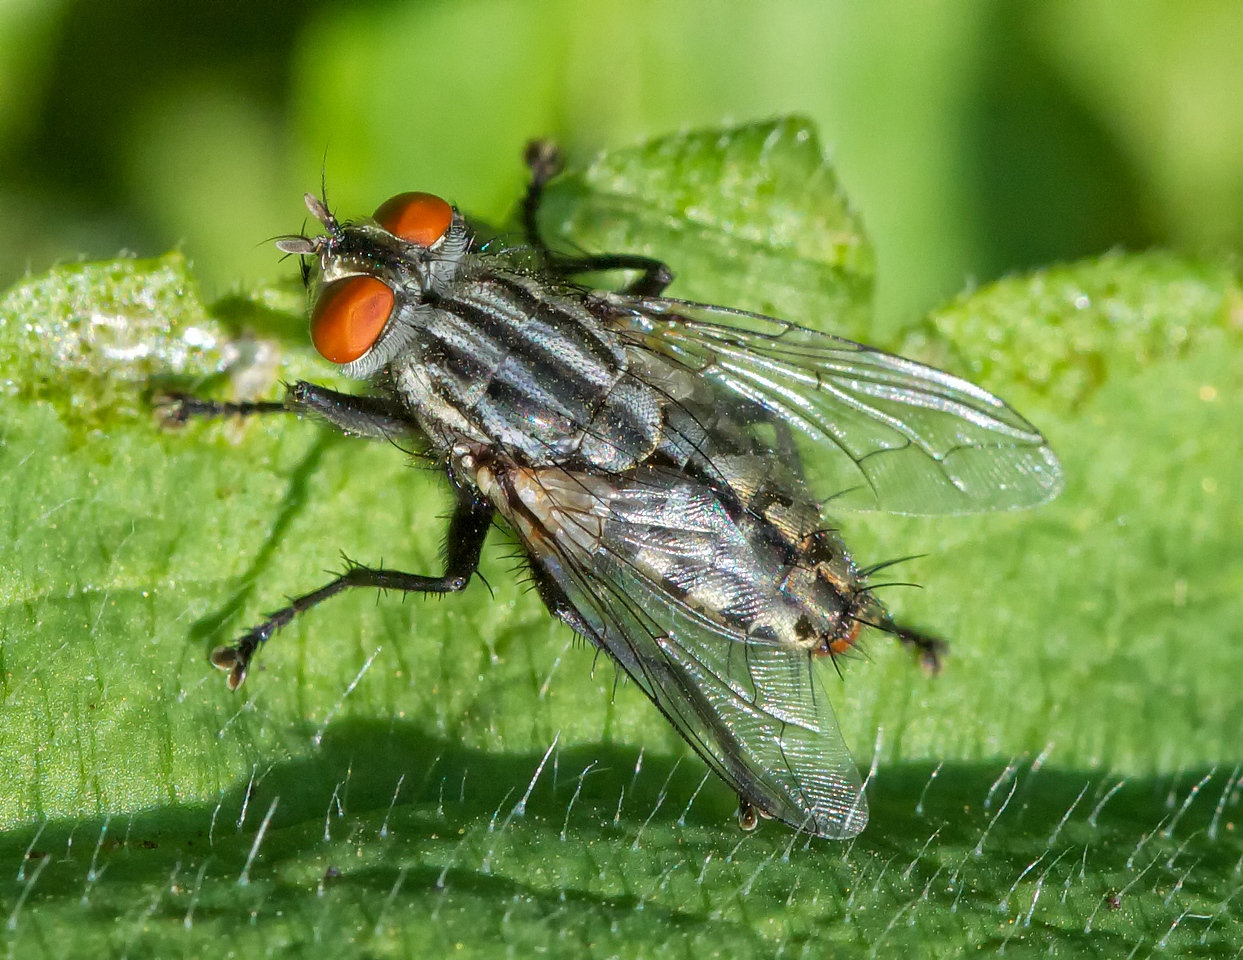 Flesh fly (family Sarcophagidae). Not an especially good image, but we can use it for 4-H entomology.